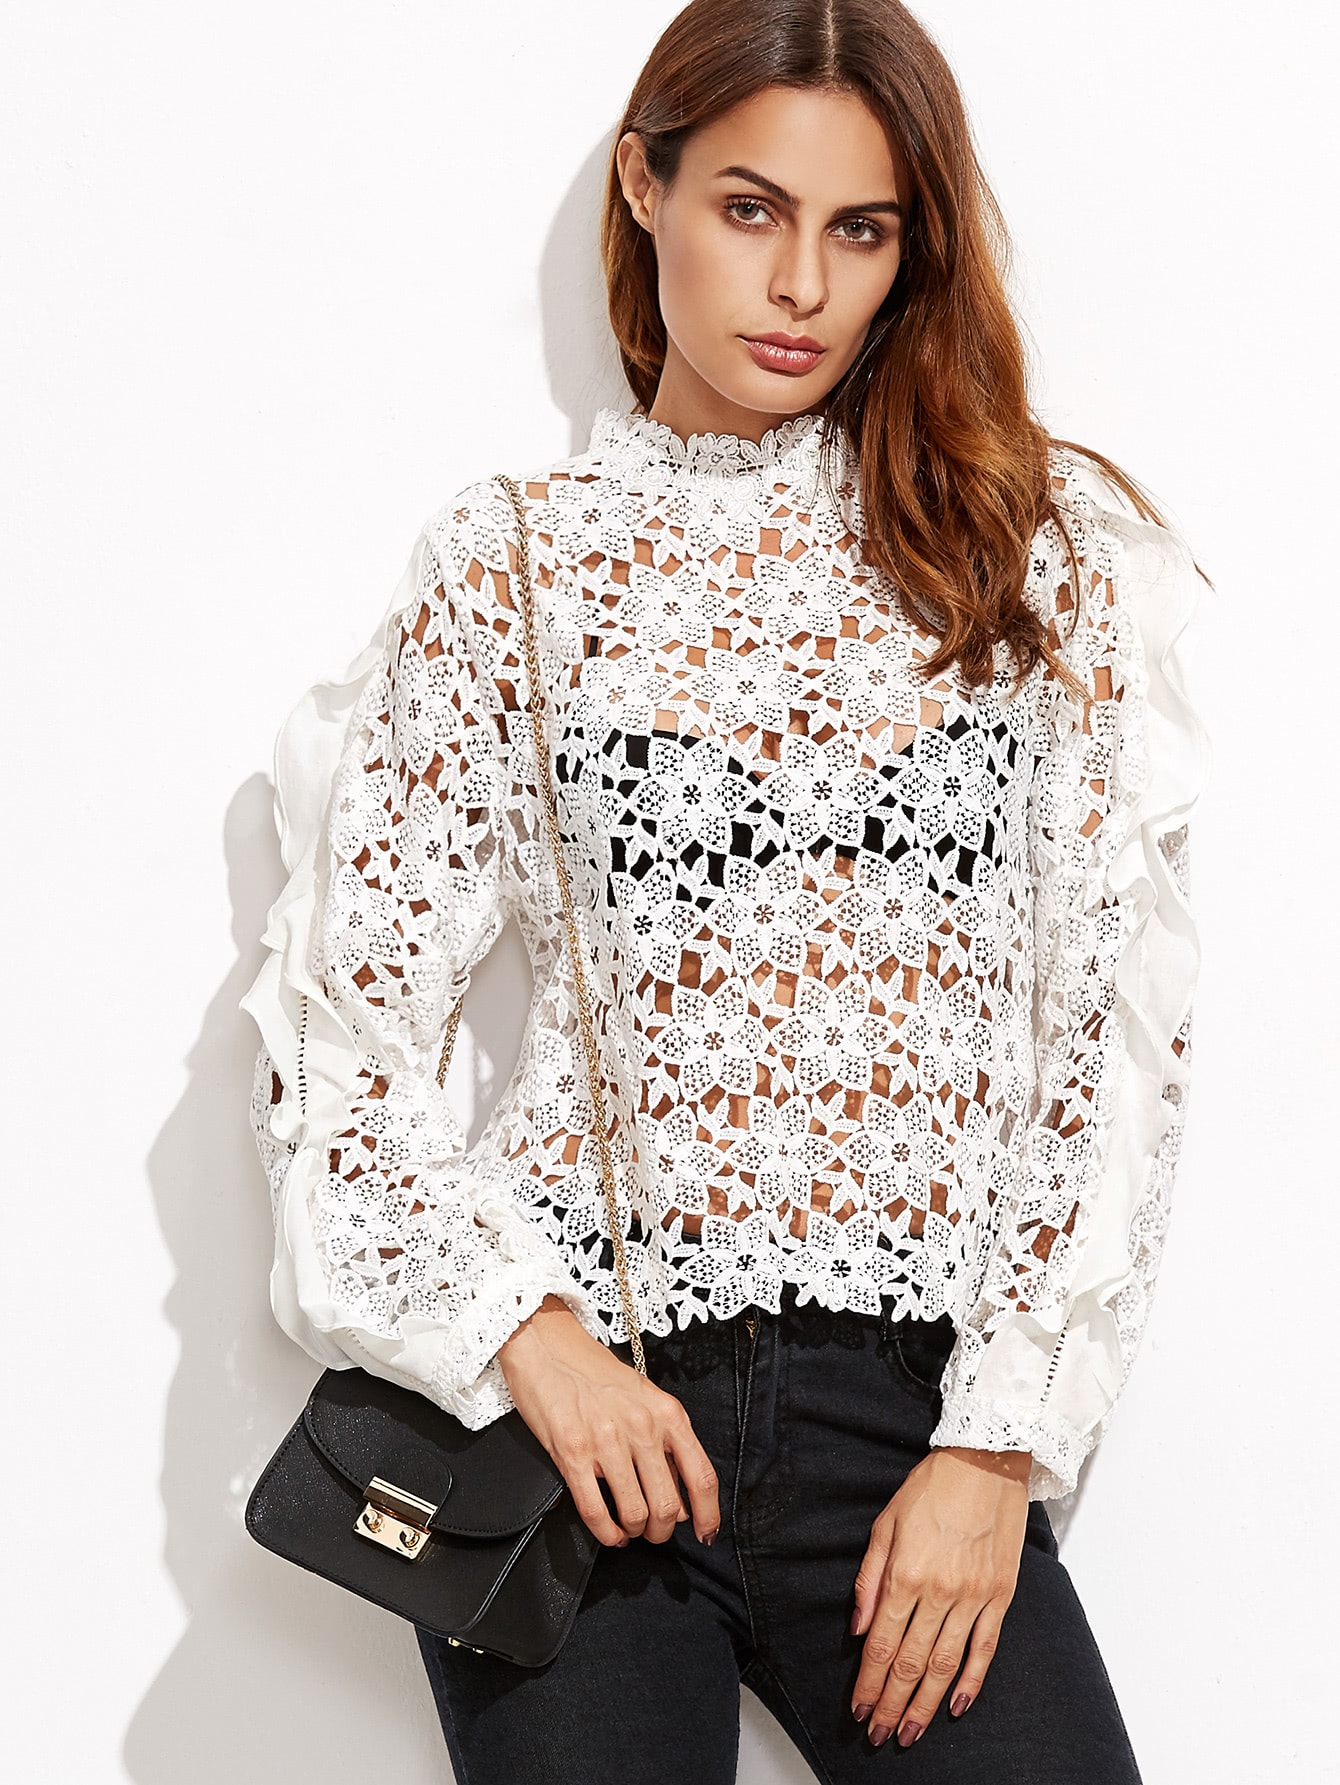 White Hollow Out Embroidered Lace Top blouse161011401